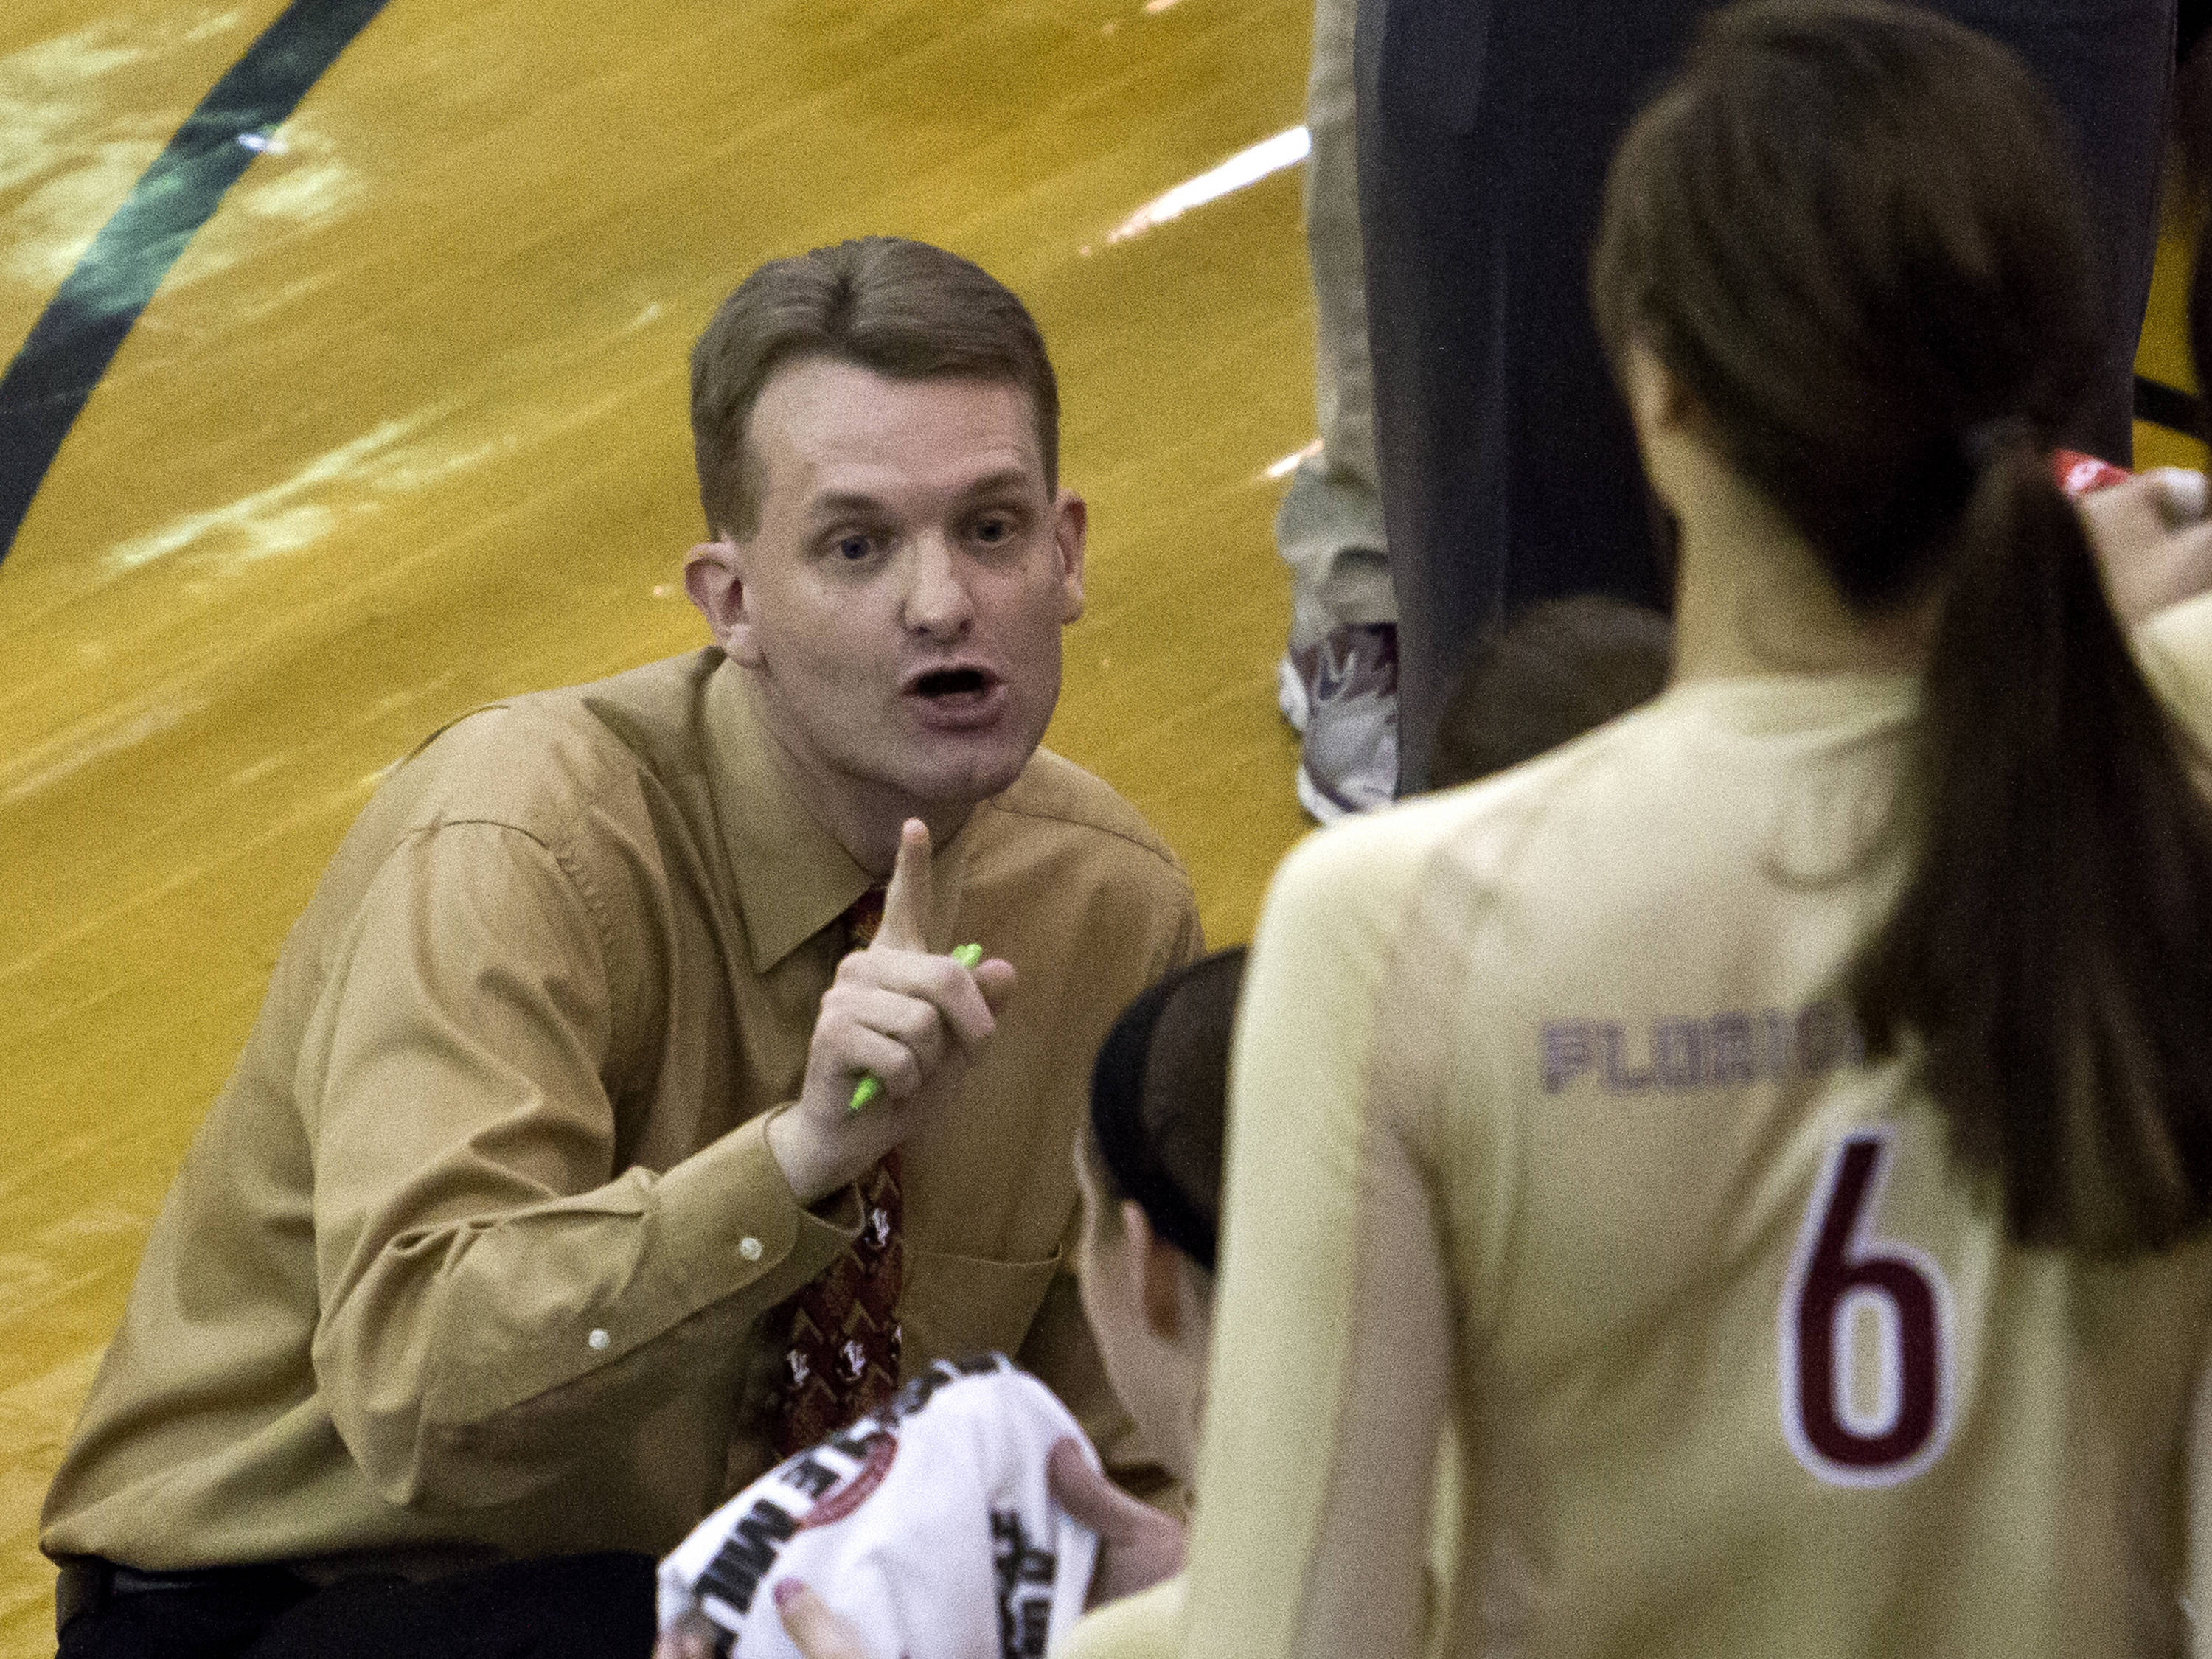 Head Coach Chris Poole with some first set instructions, FSU vs NC, 10/05/12 (Photo by Steve Musco)